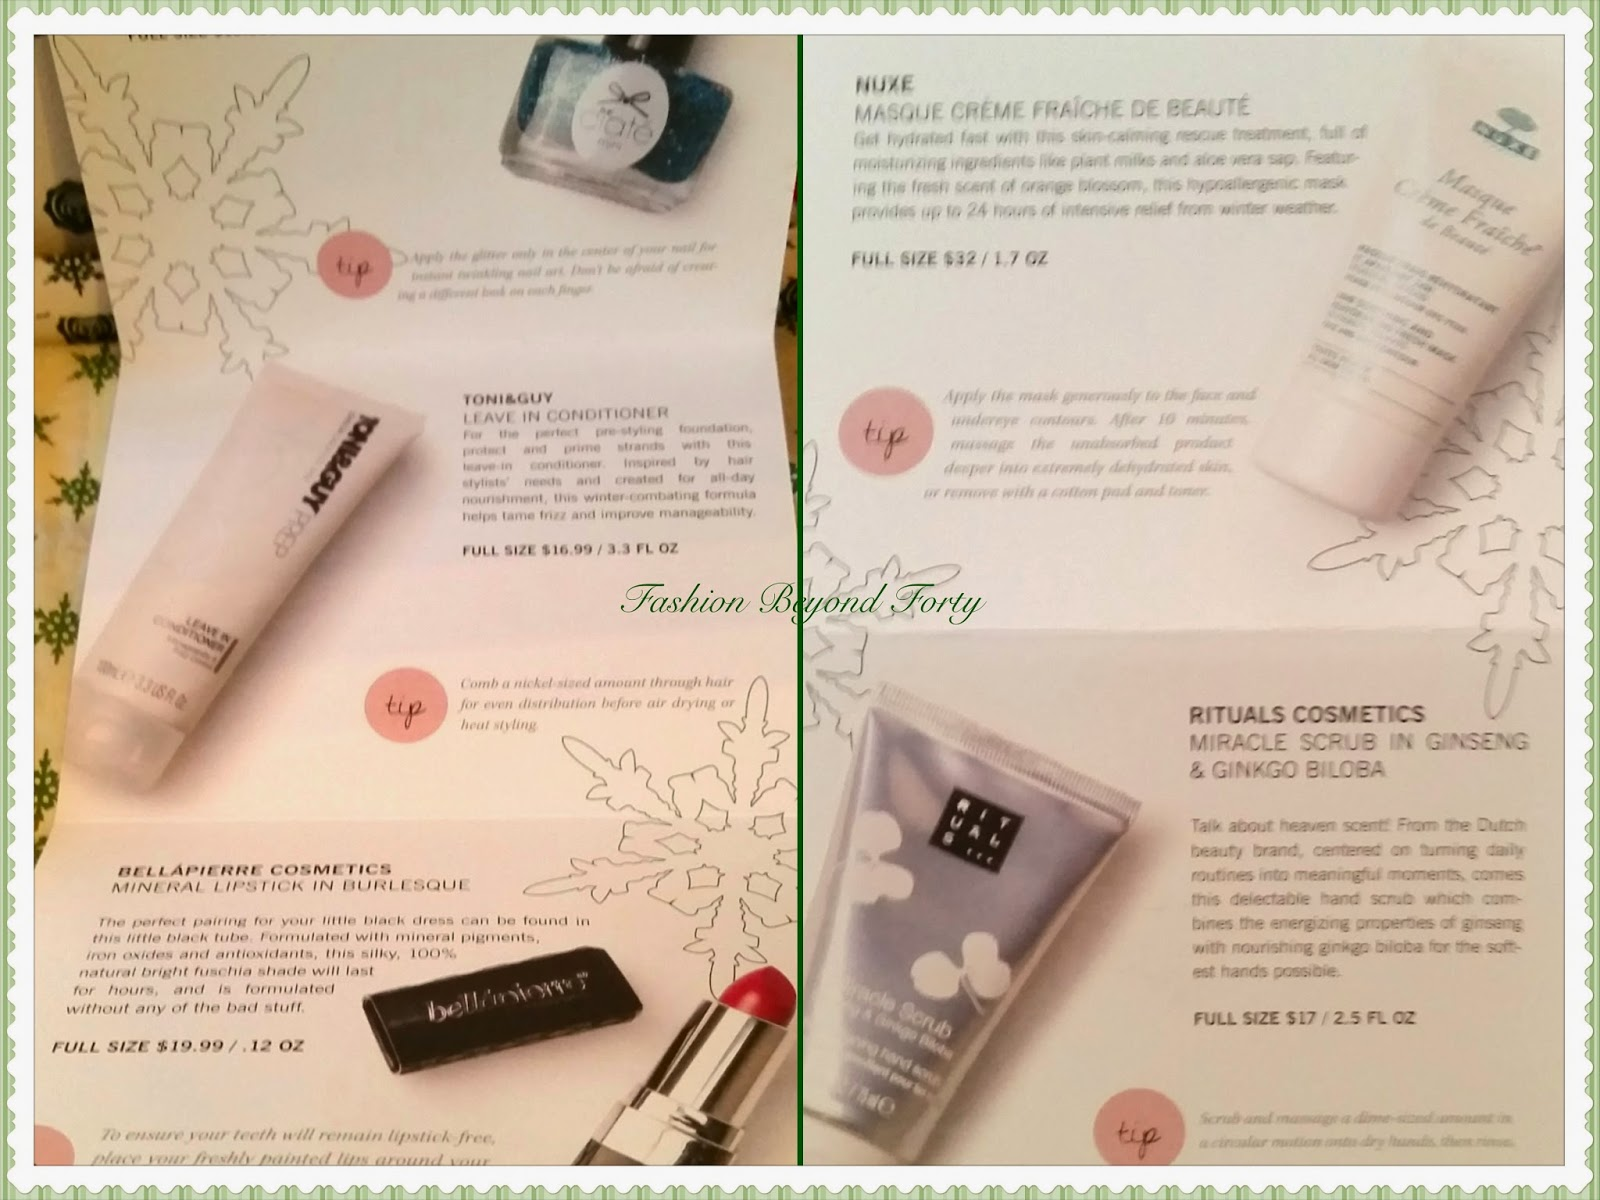 December 2014 Glossybox on Fashion Beyond Forty